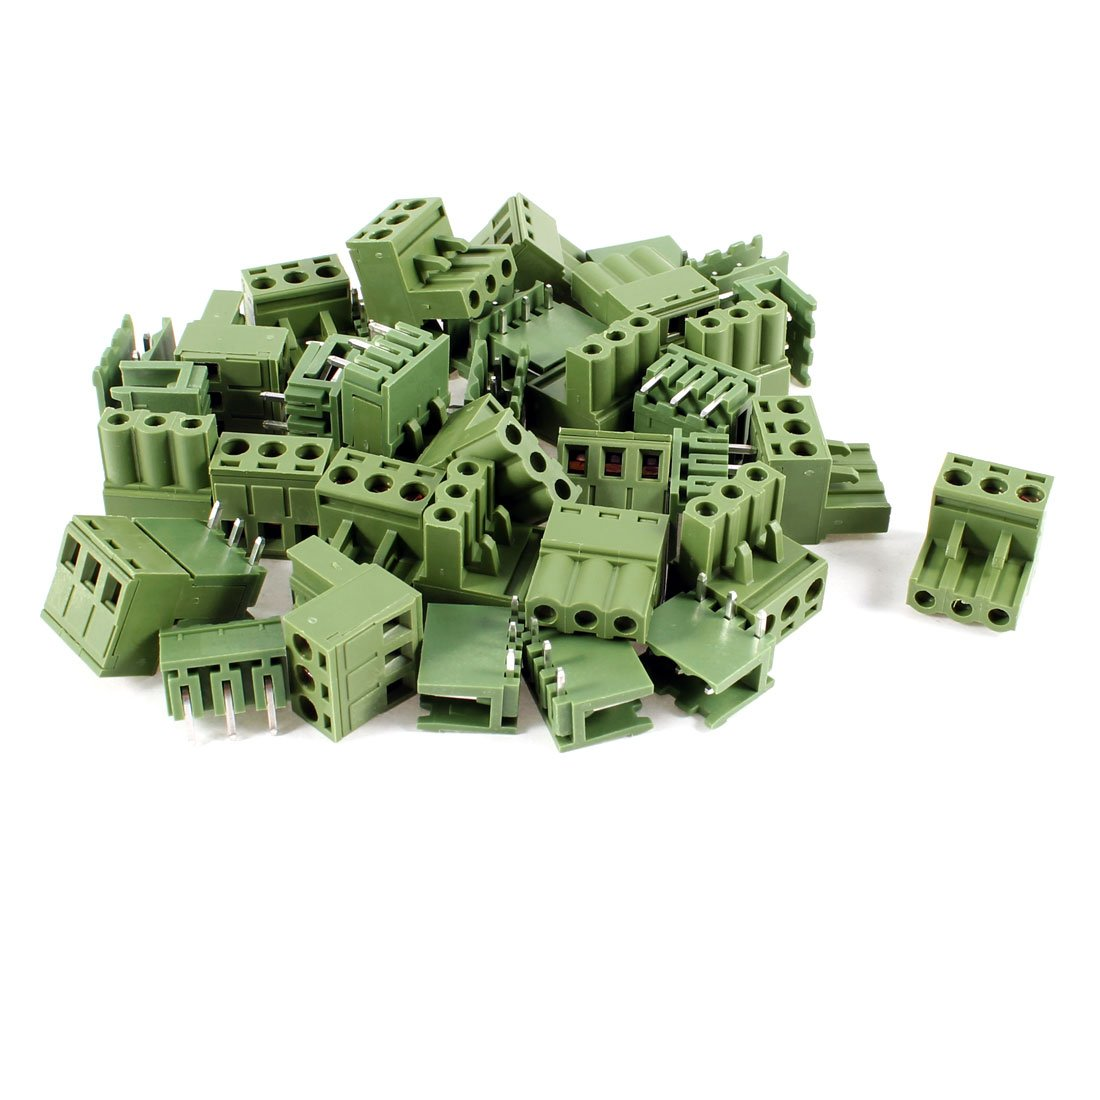 uxcell 20 Pcs AC 300V 10A 5.08mm Pitch 3 Pin Screw Pluggable Terminal Block